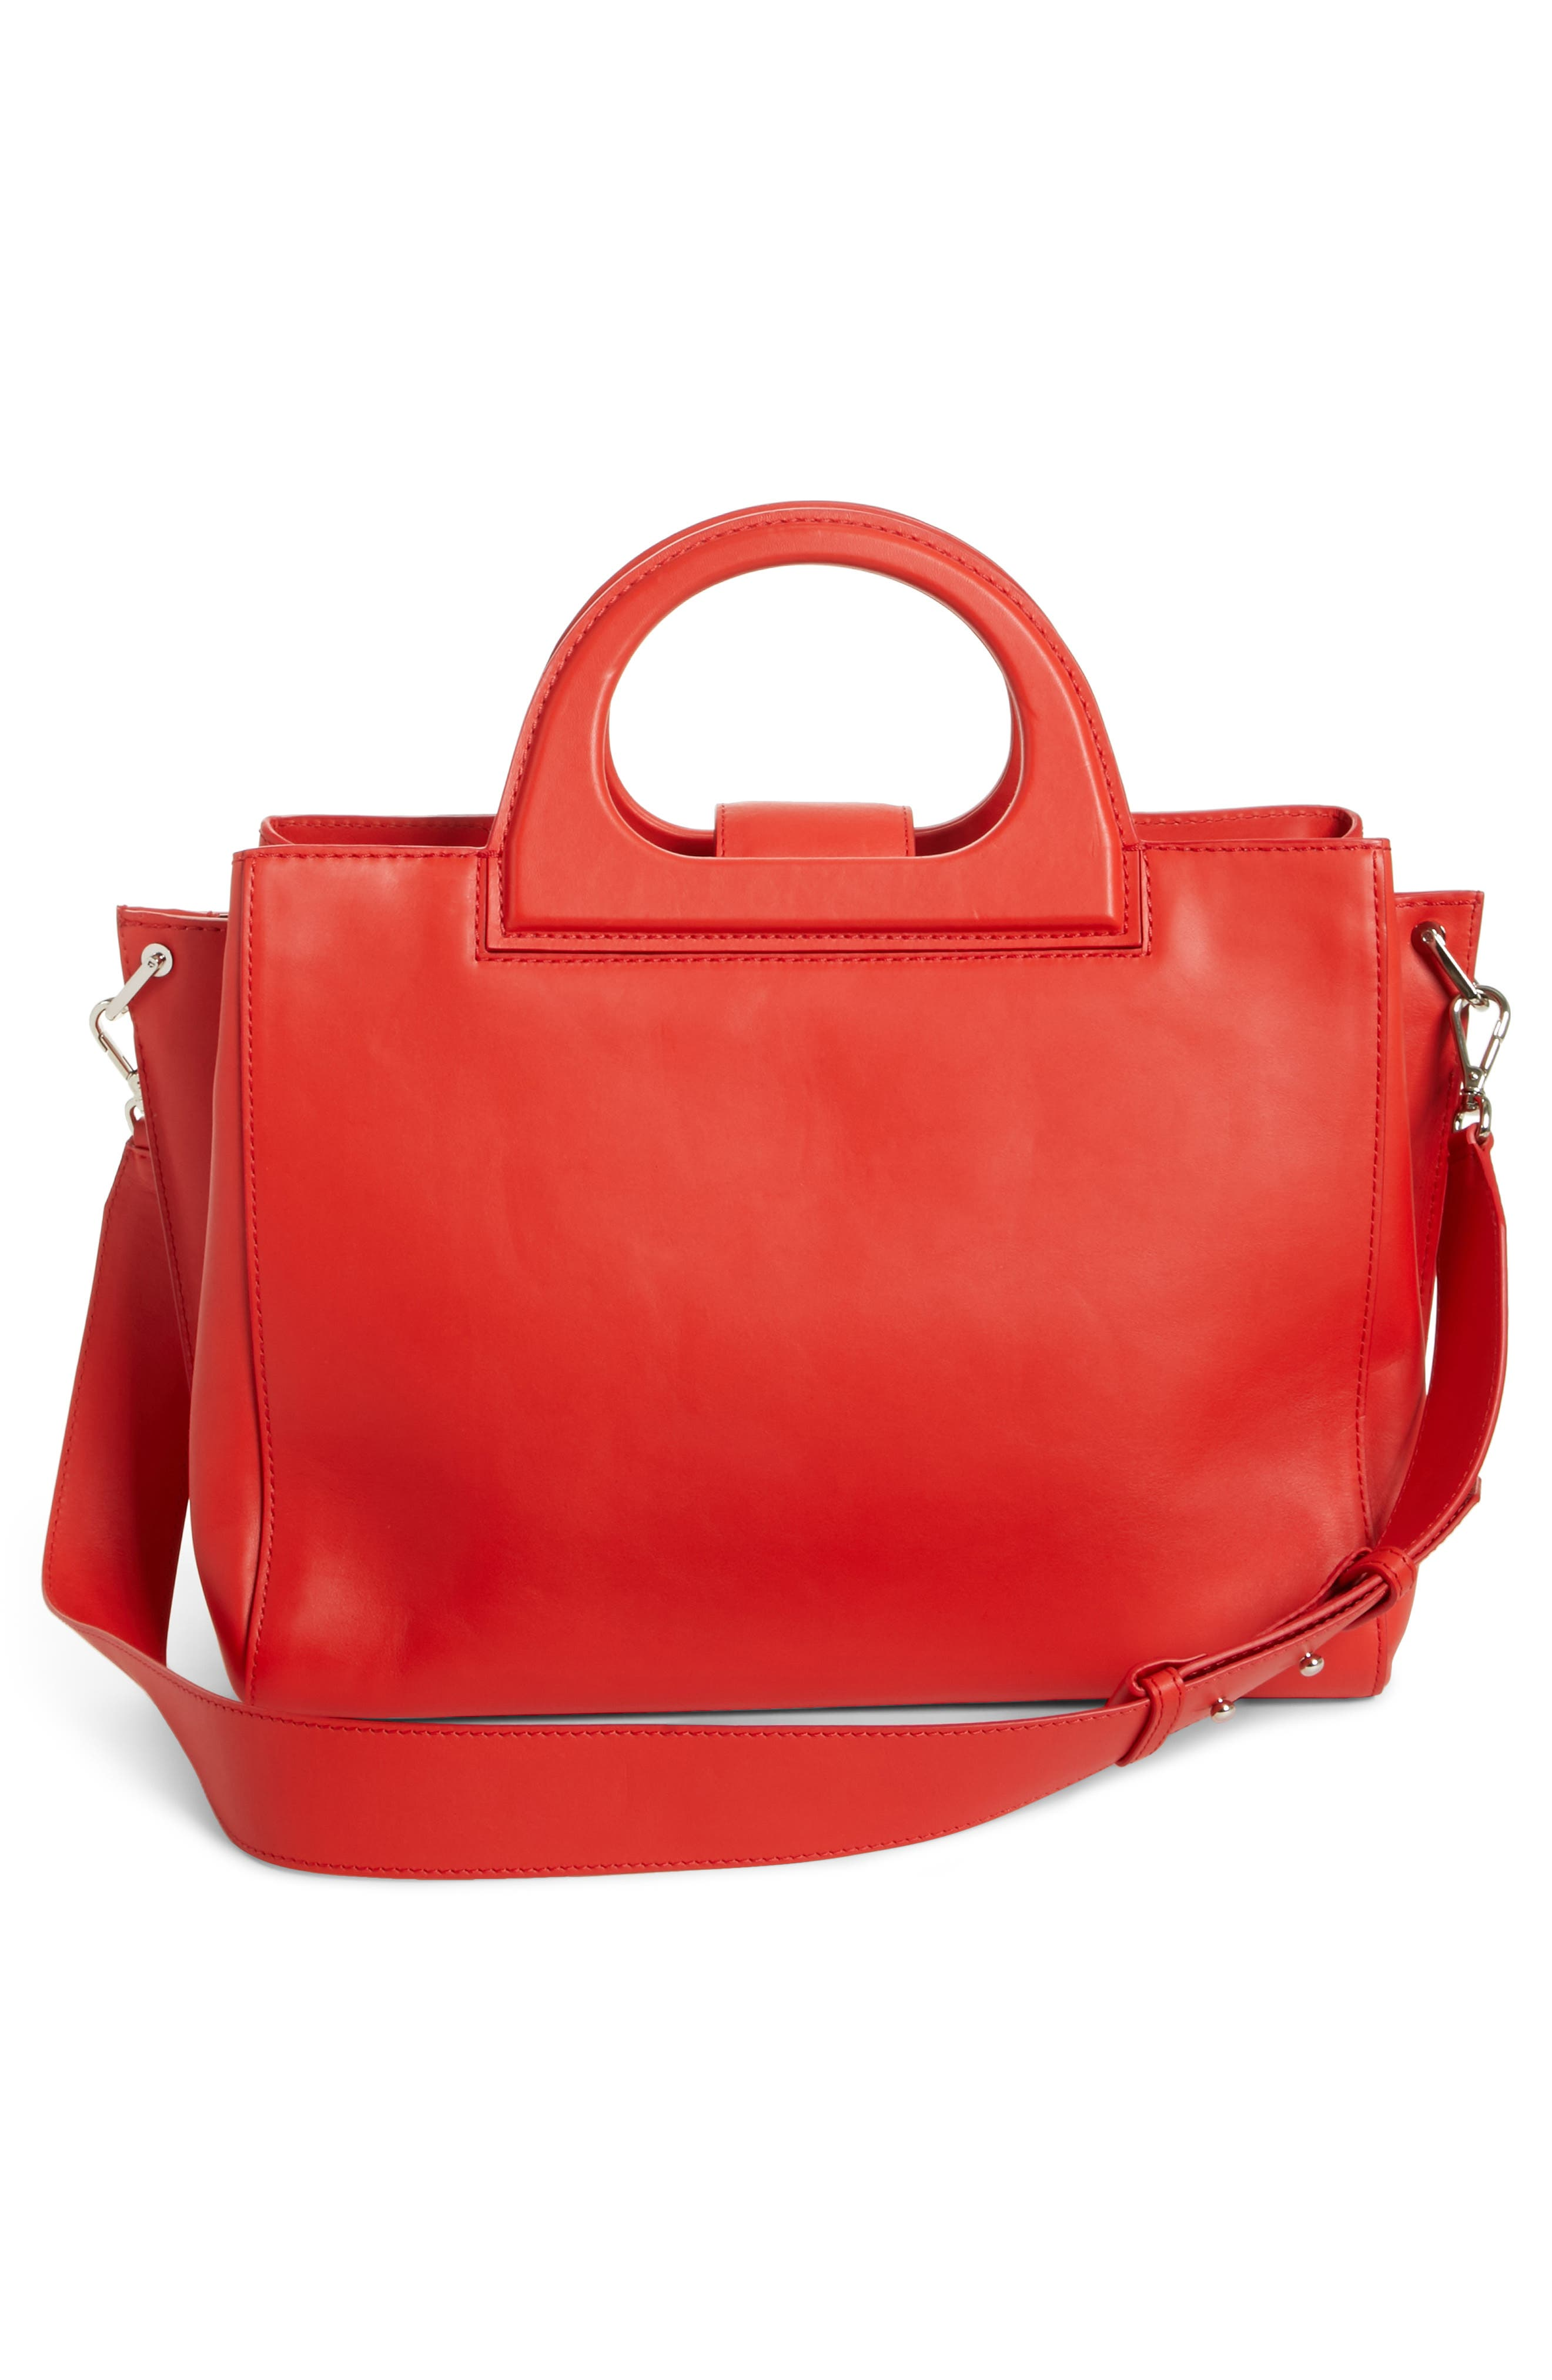 Medium Grace Leather Tote,                             Alternate thumbnail 3, color,                             Coral